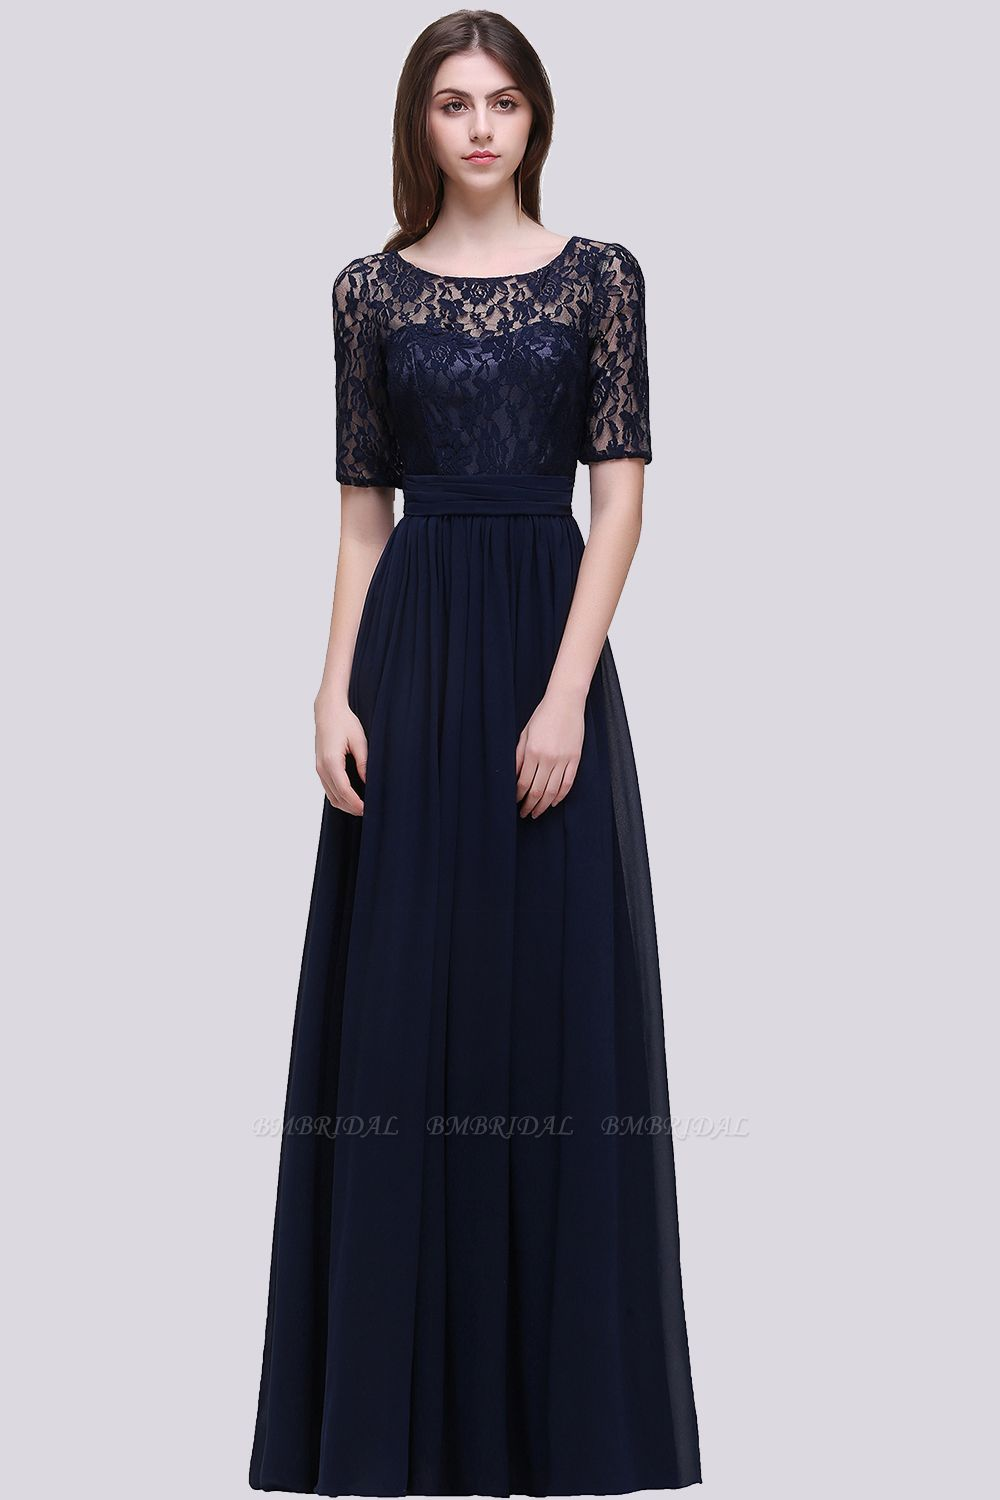 BMbridal Affordable Lace Scoop Dark Navy Bridesmaid Dresses with Half-Sleeves